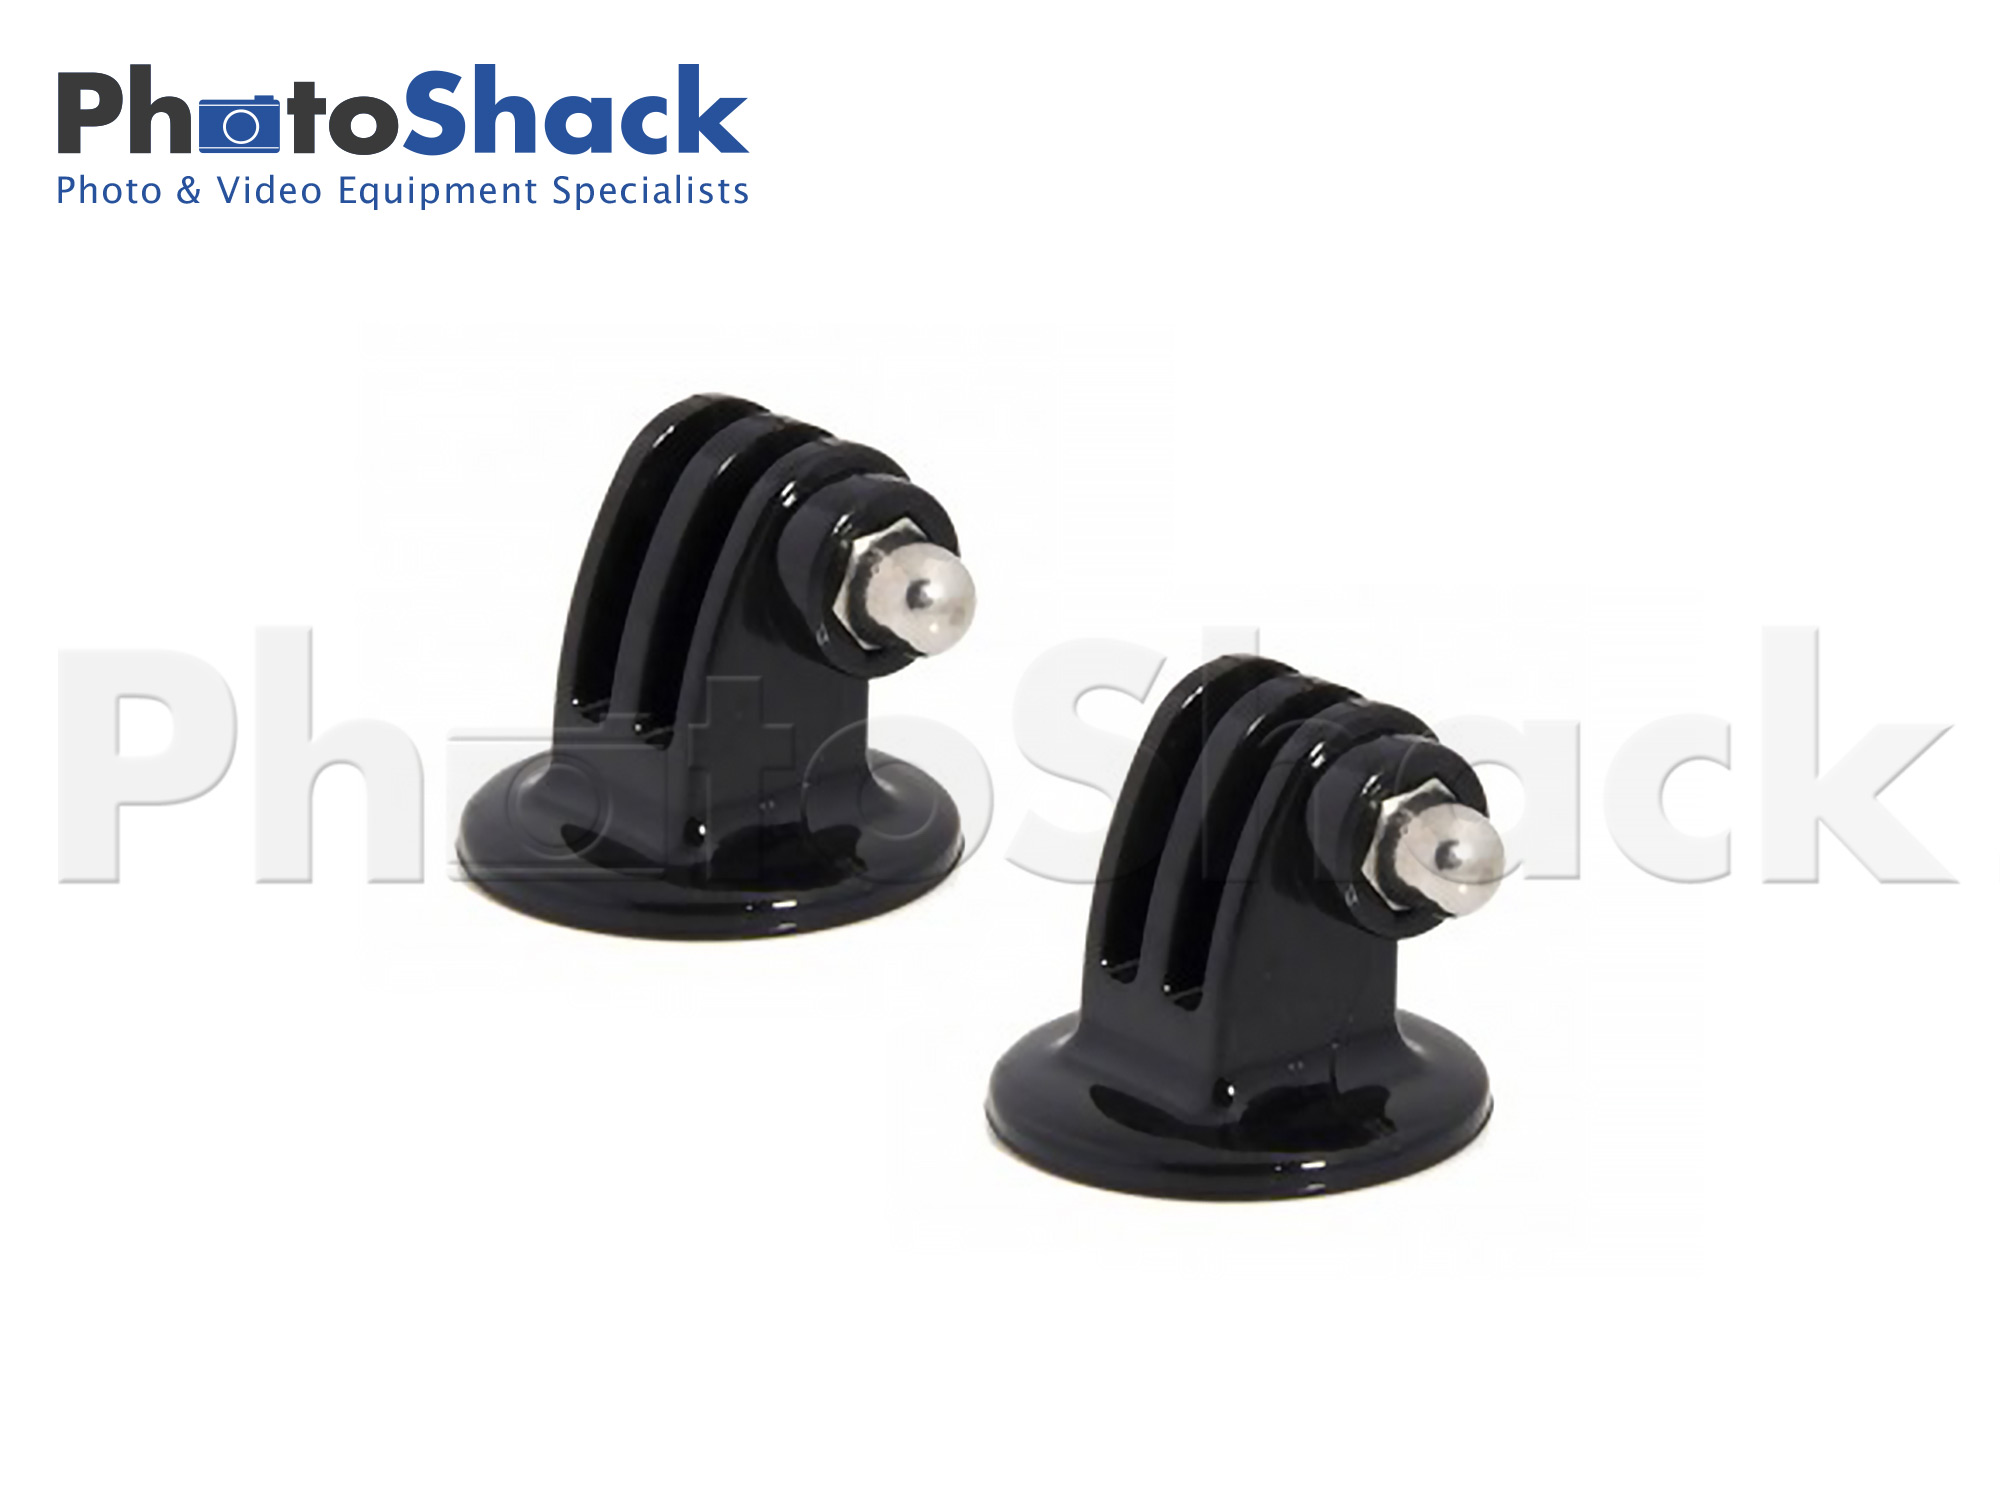 Gopro Compatible Accessories - Tripod mount adapter